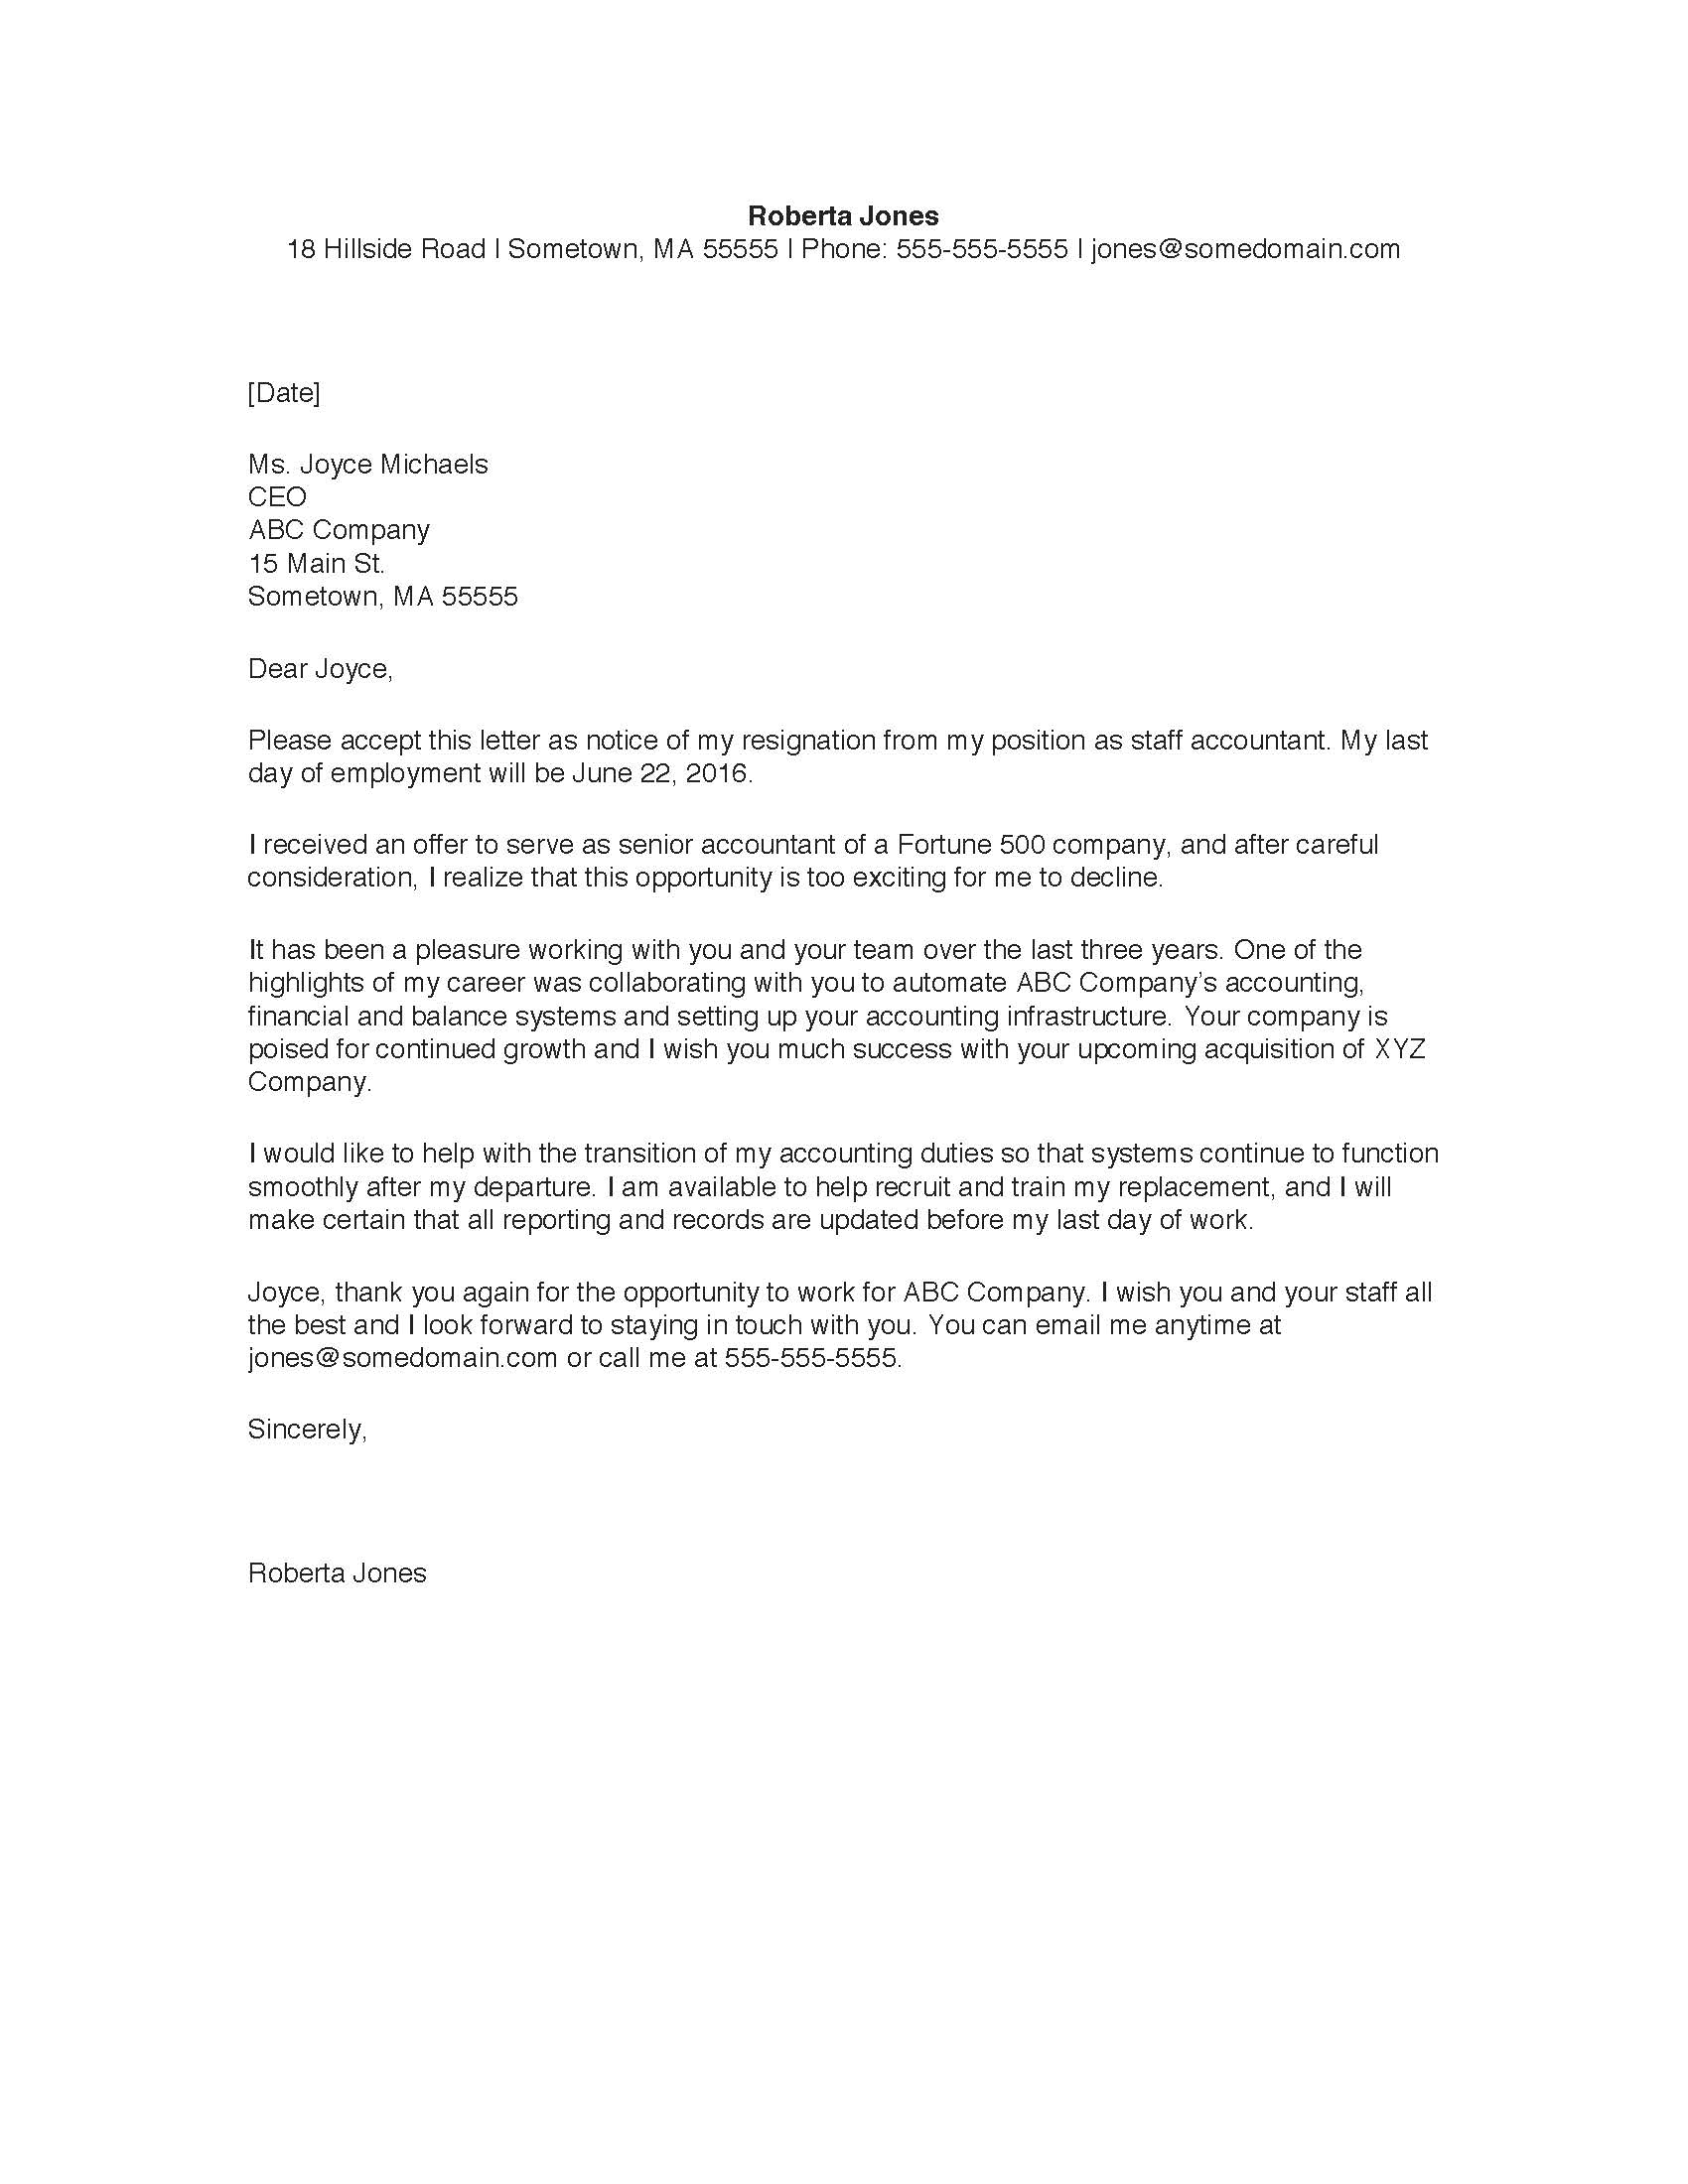 Sample resignation letter monster sample resignation letter aljukfo Images